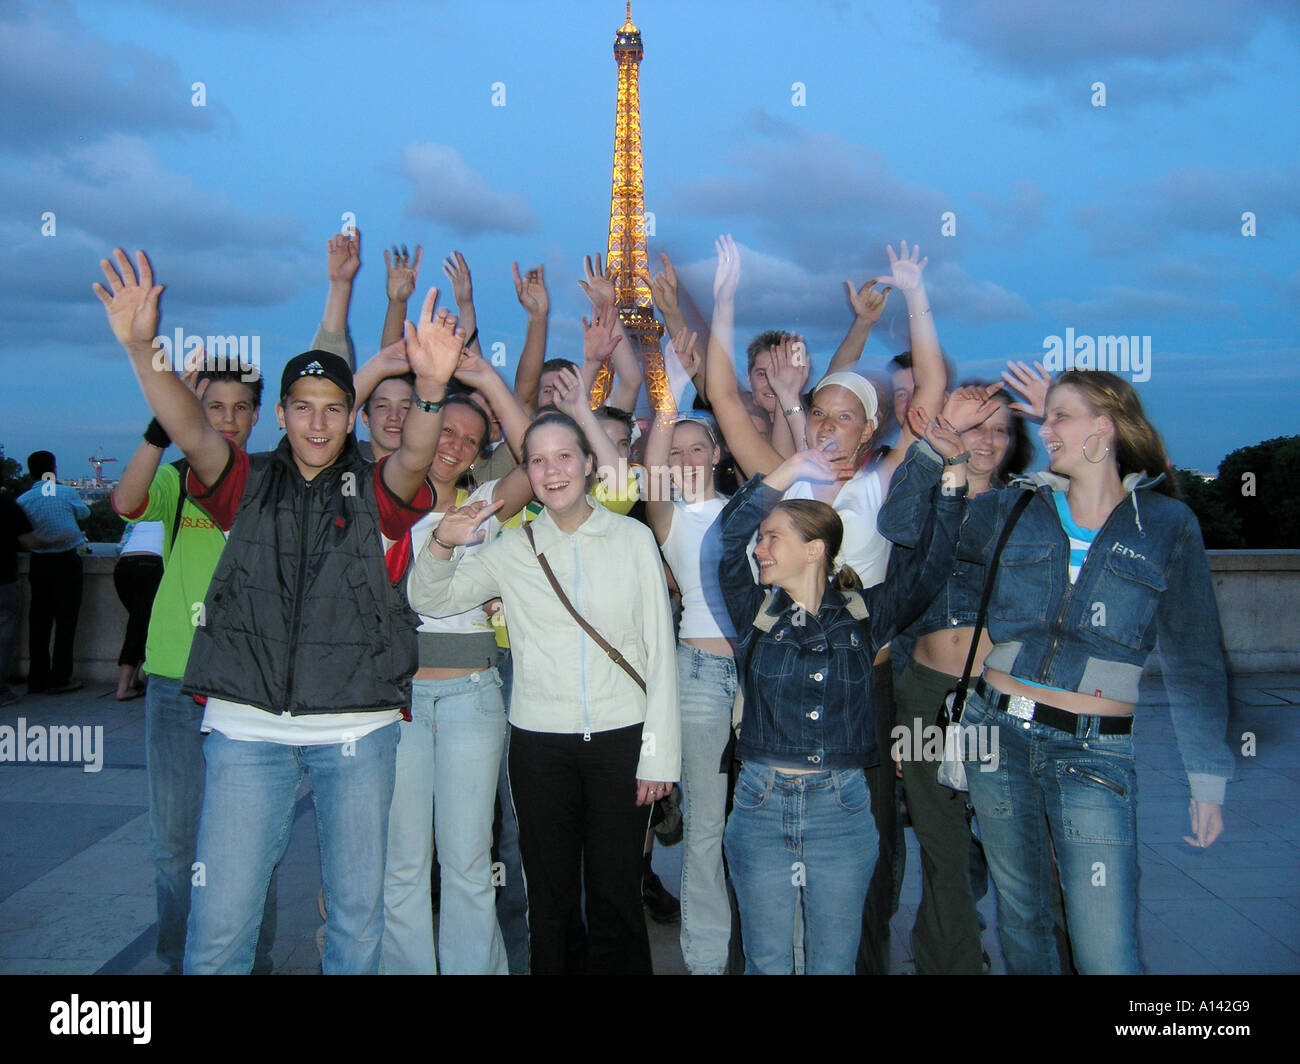 snapshot of teenage school group waving at the camera in front of Eiffel Tower at dusk Paris France - Stock Image